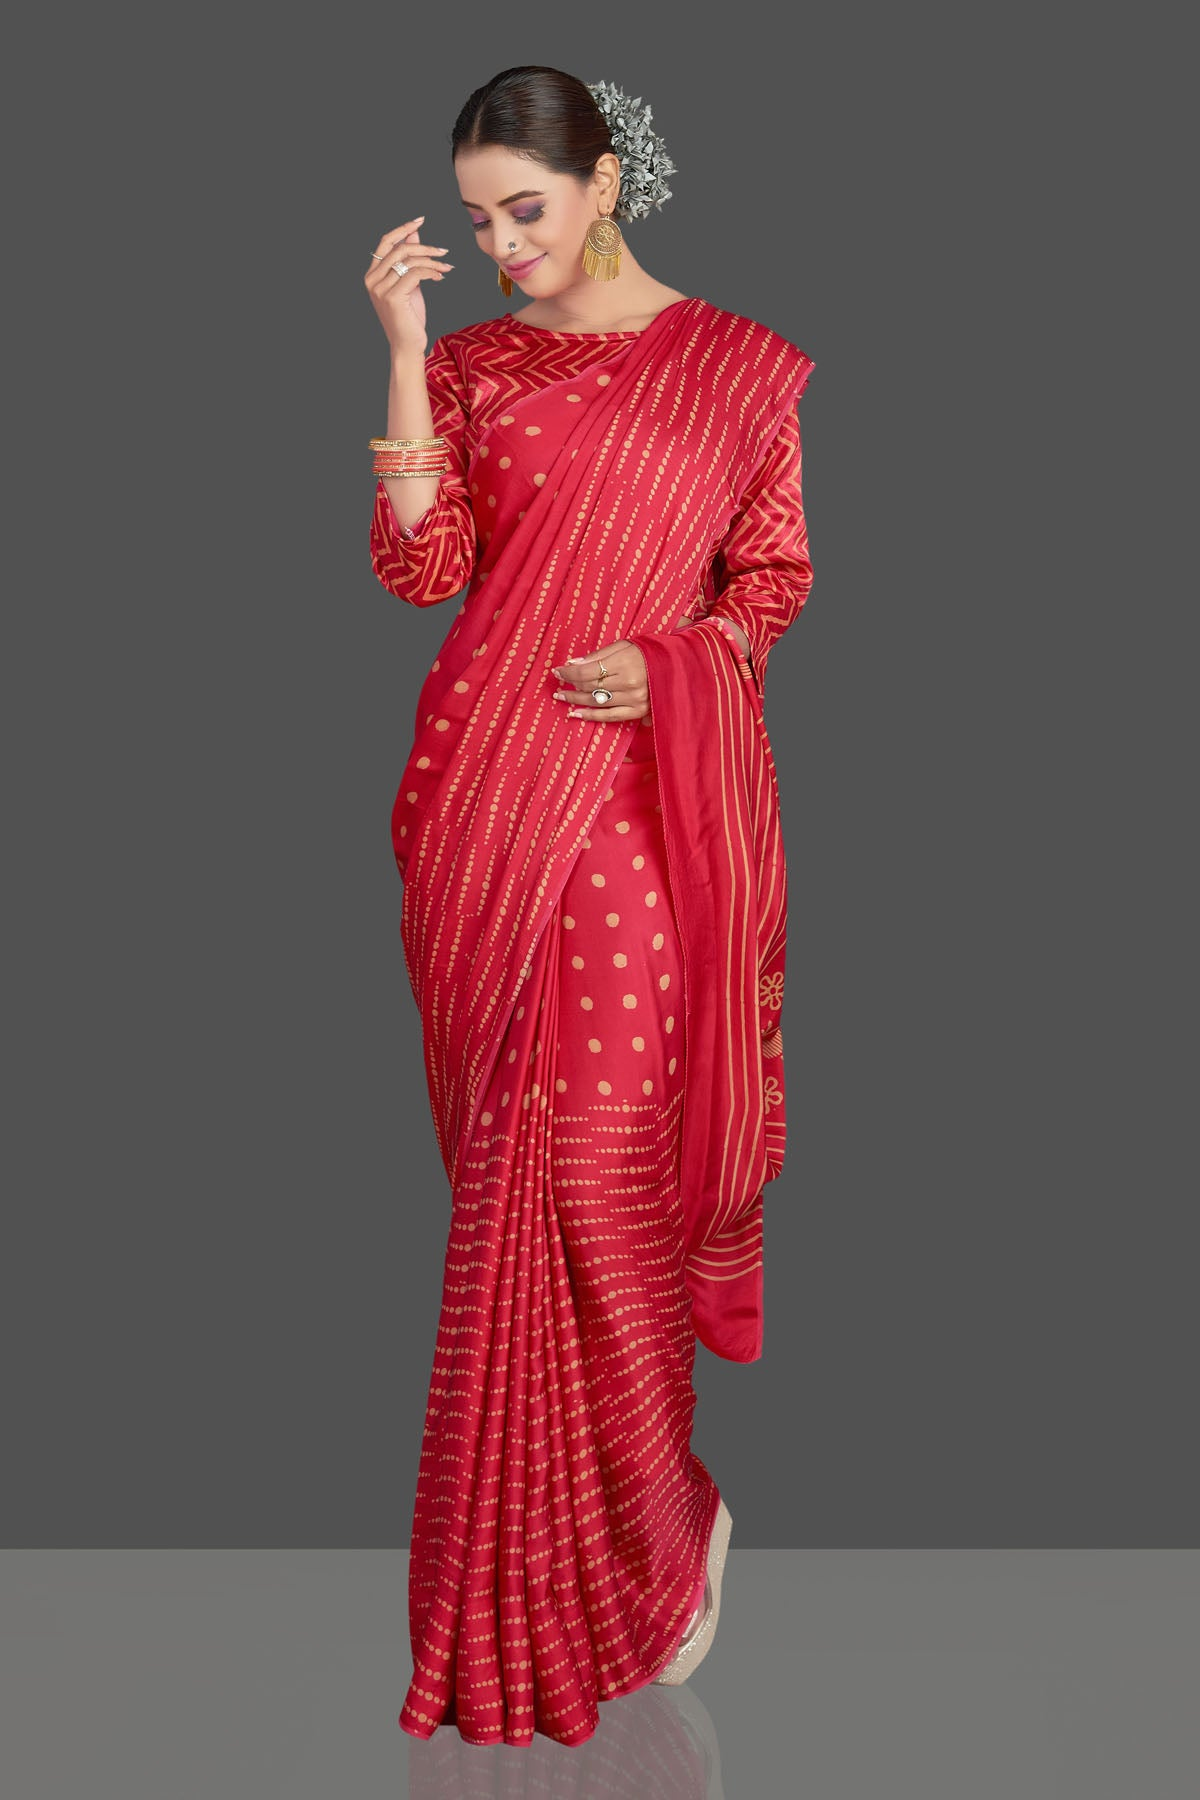 Buy gorgeous red printed modal silk sari online in USA. Make your presence felt on special occasions in beautiful embroidered sarees, handwoven sarees, pure silk sarees, tussar sarees from Pure Elegance Indian saree store in USA.-side